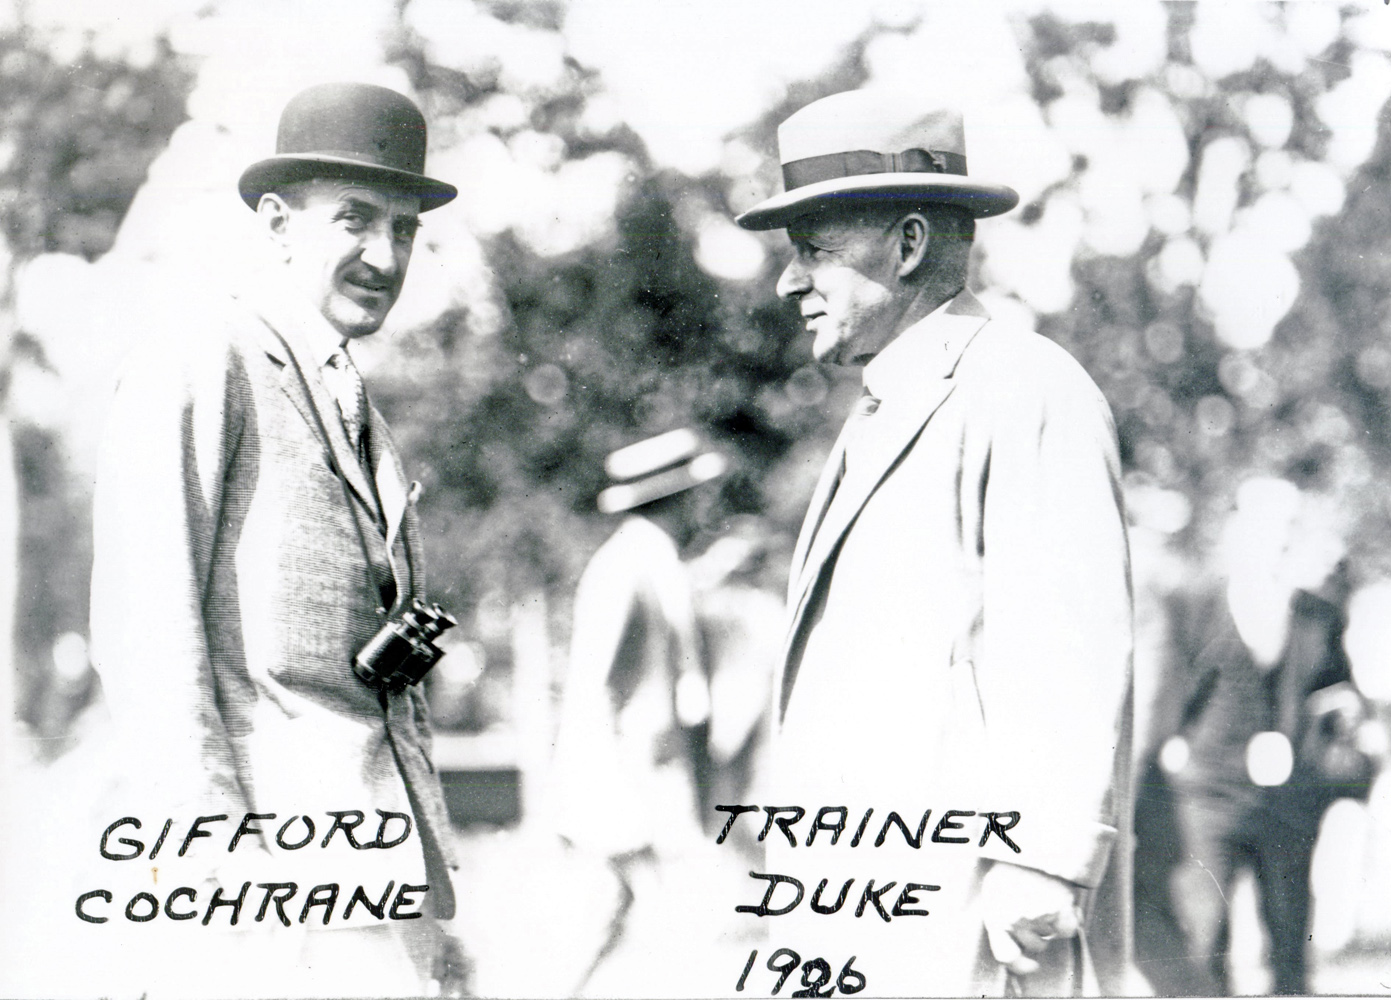 Gifford Cochrane and trainer William Duke (C. C. Cook/Museum Collection)